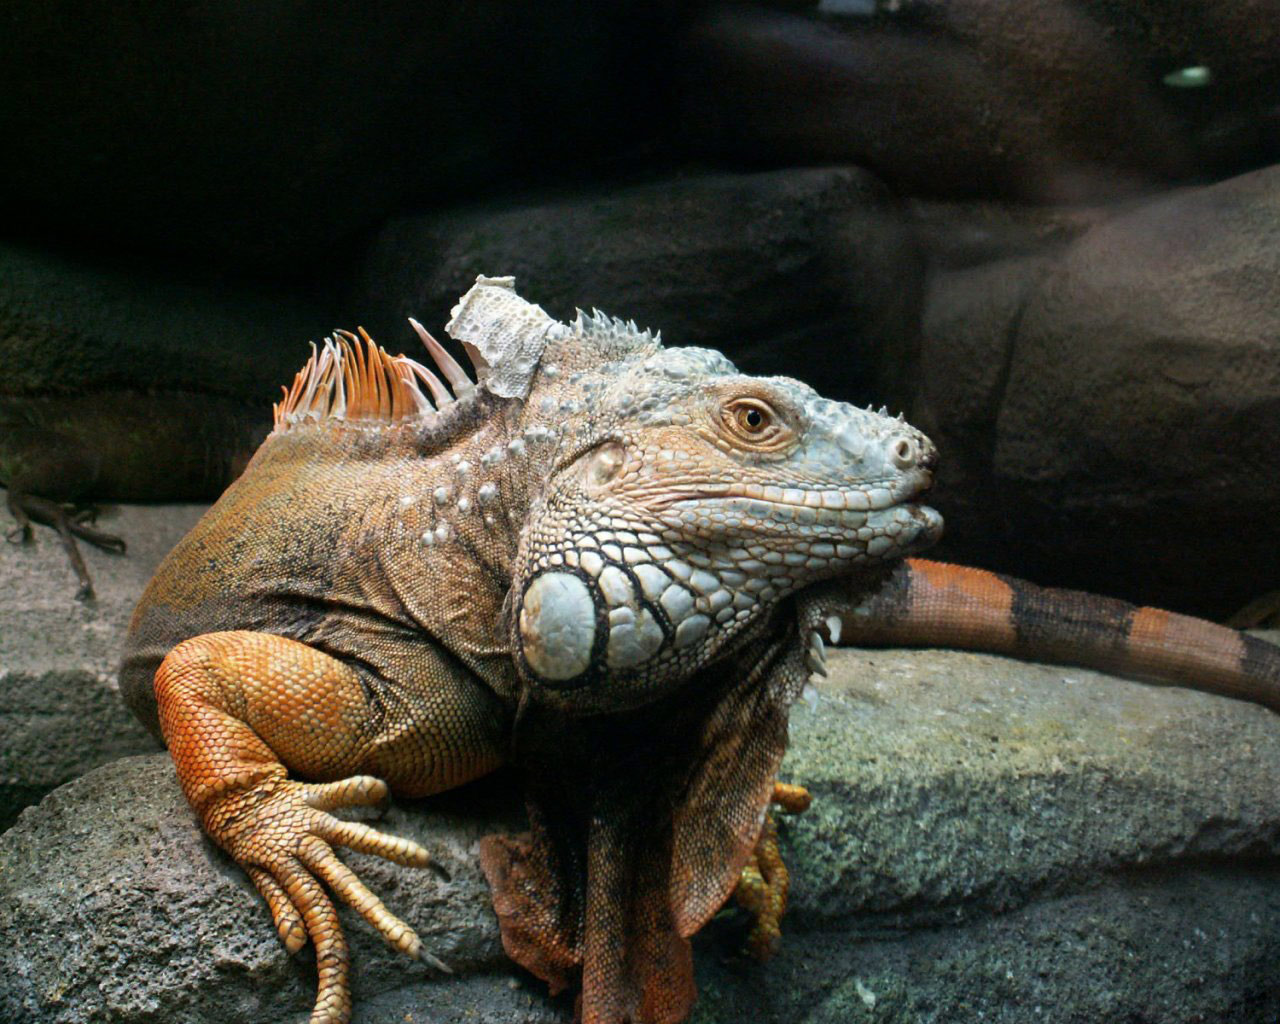 Iguanas images Iguana HD wallpaper and background photos 28691965 1280x1024